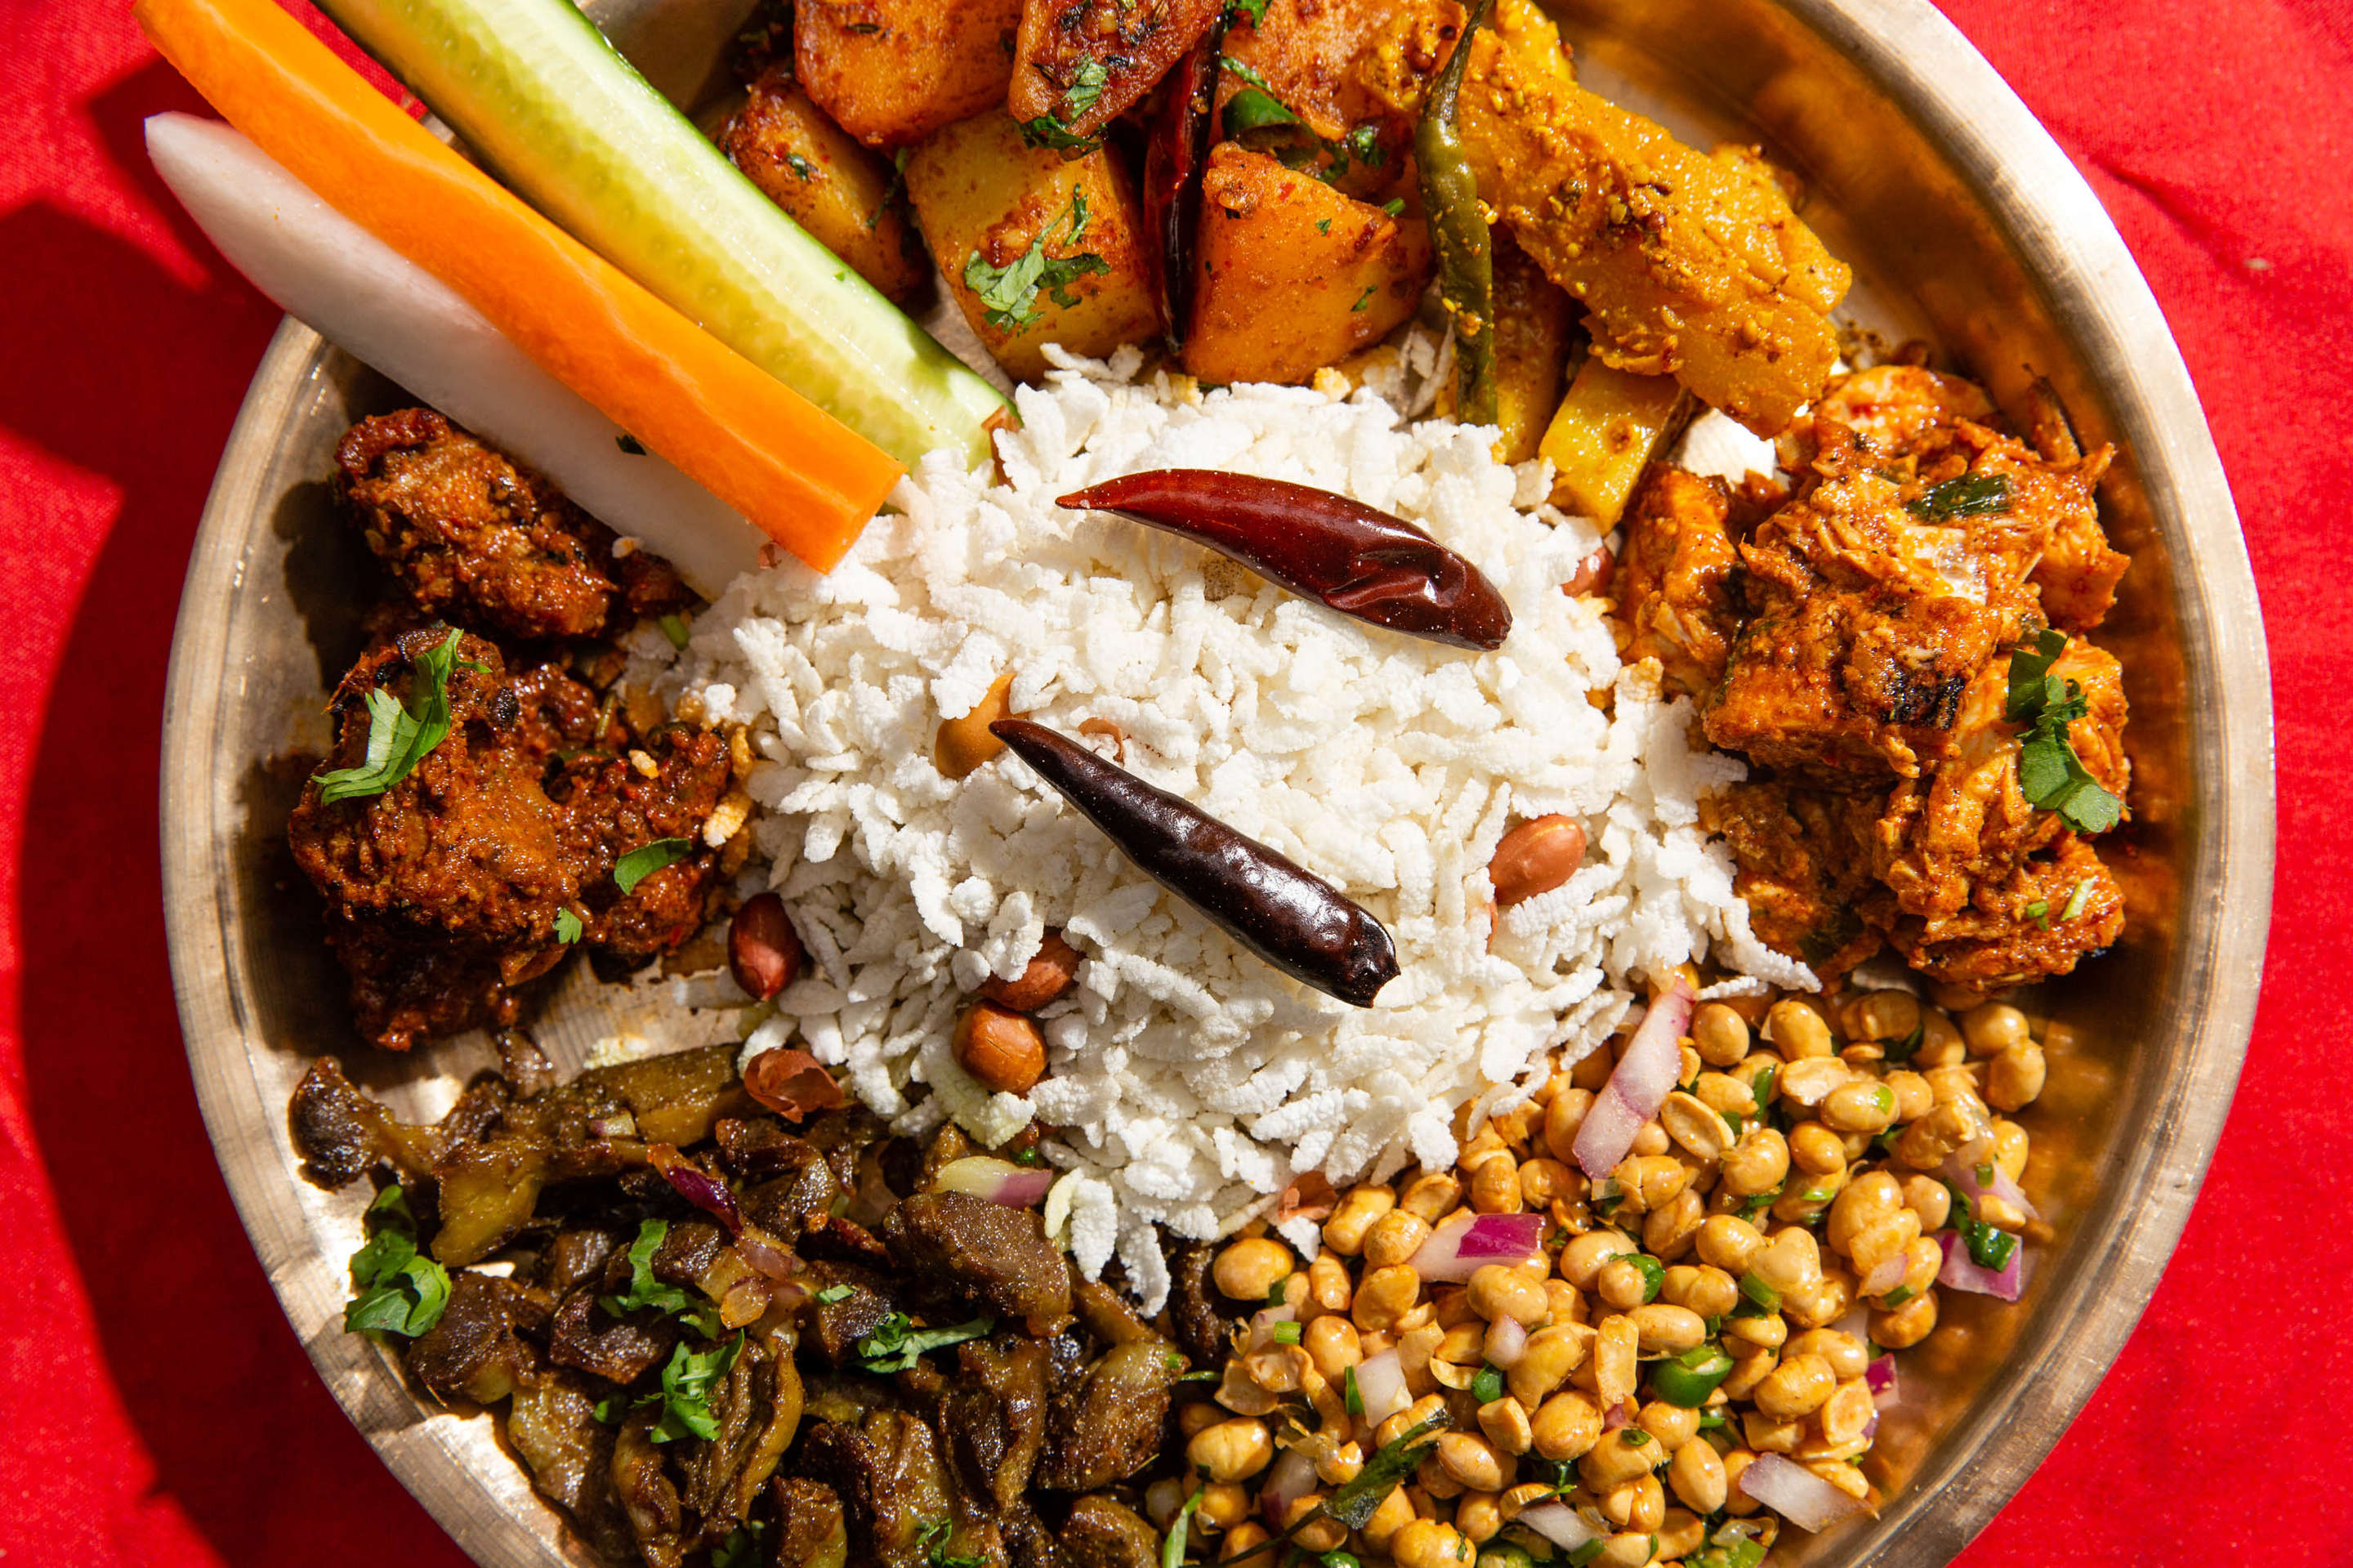 Nepal's Biggest Barbecue Chain Is Set to Take Over America